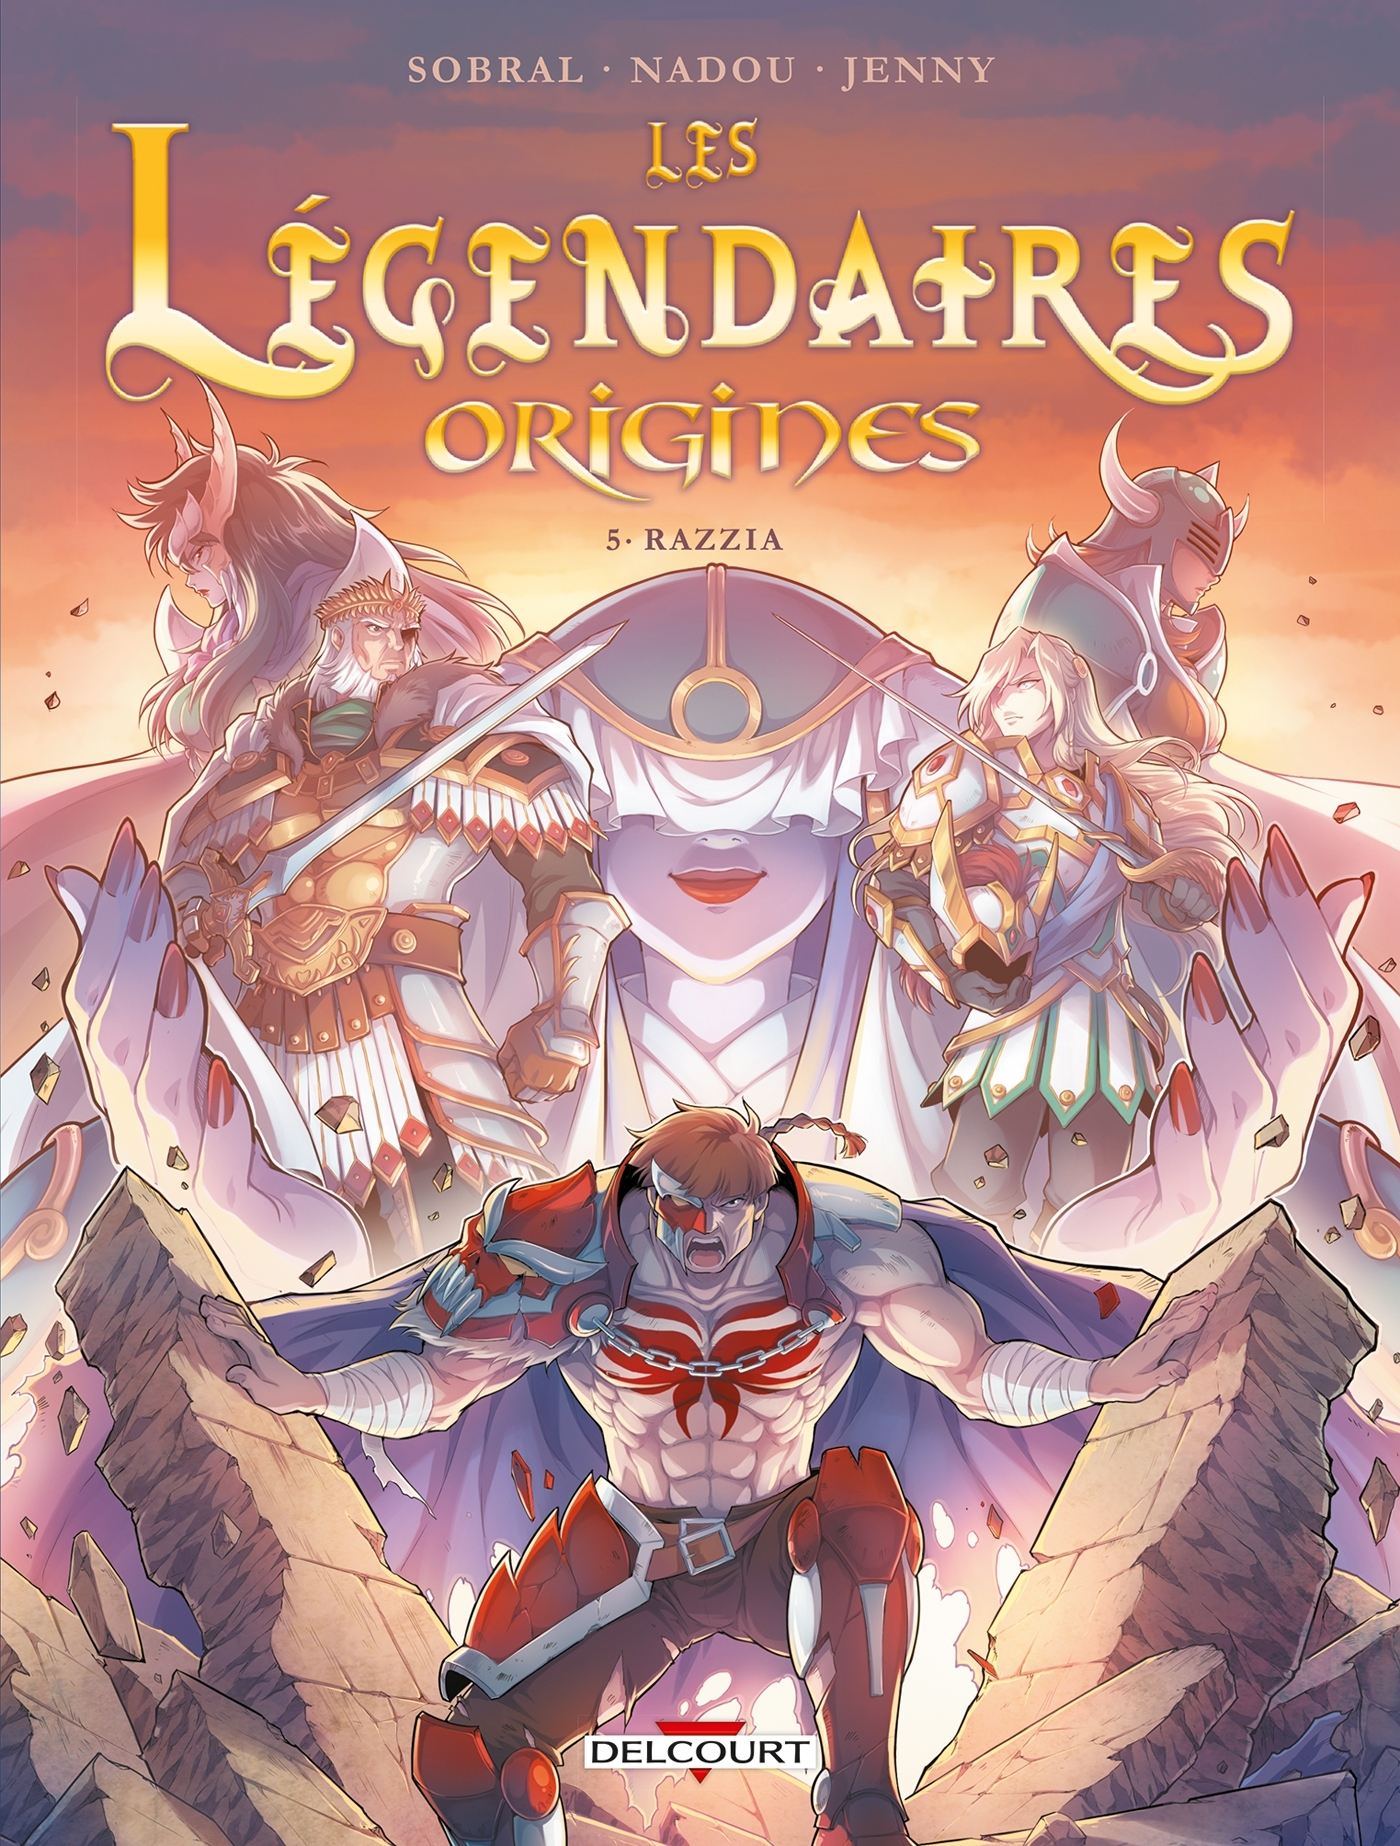 LEGENDAIRES - ORIGINES 5. RAZZIA